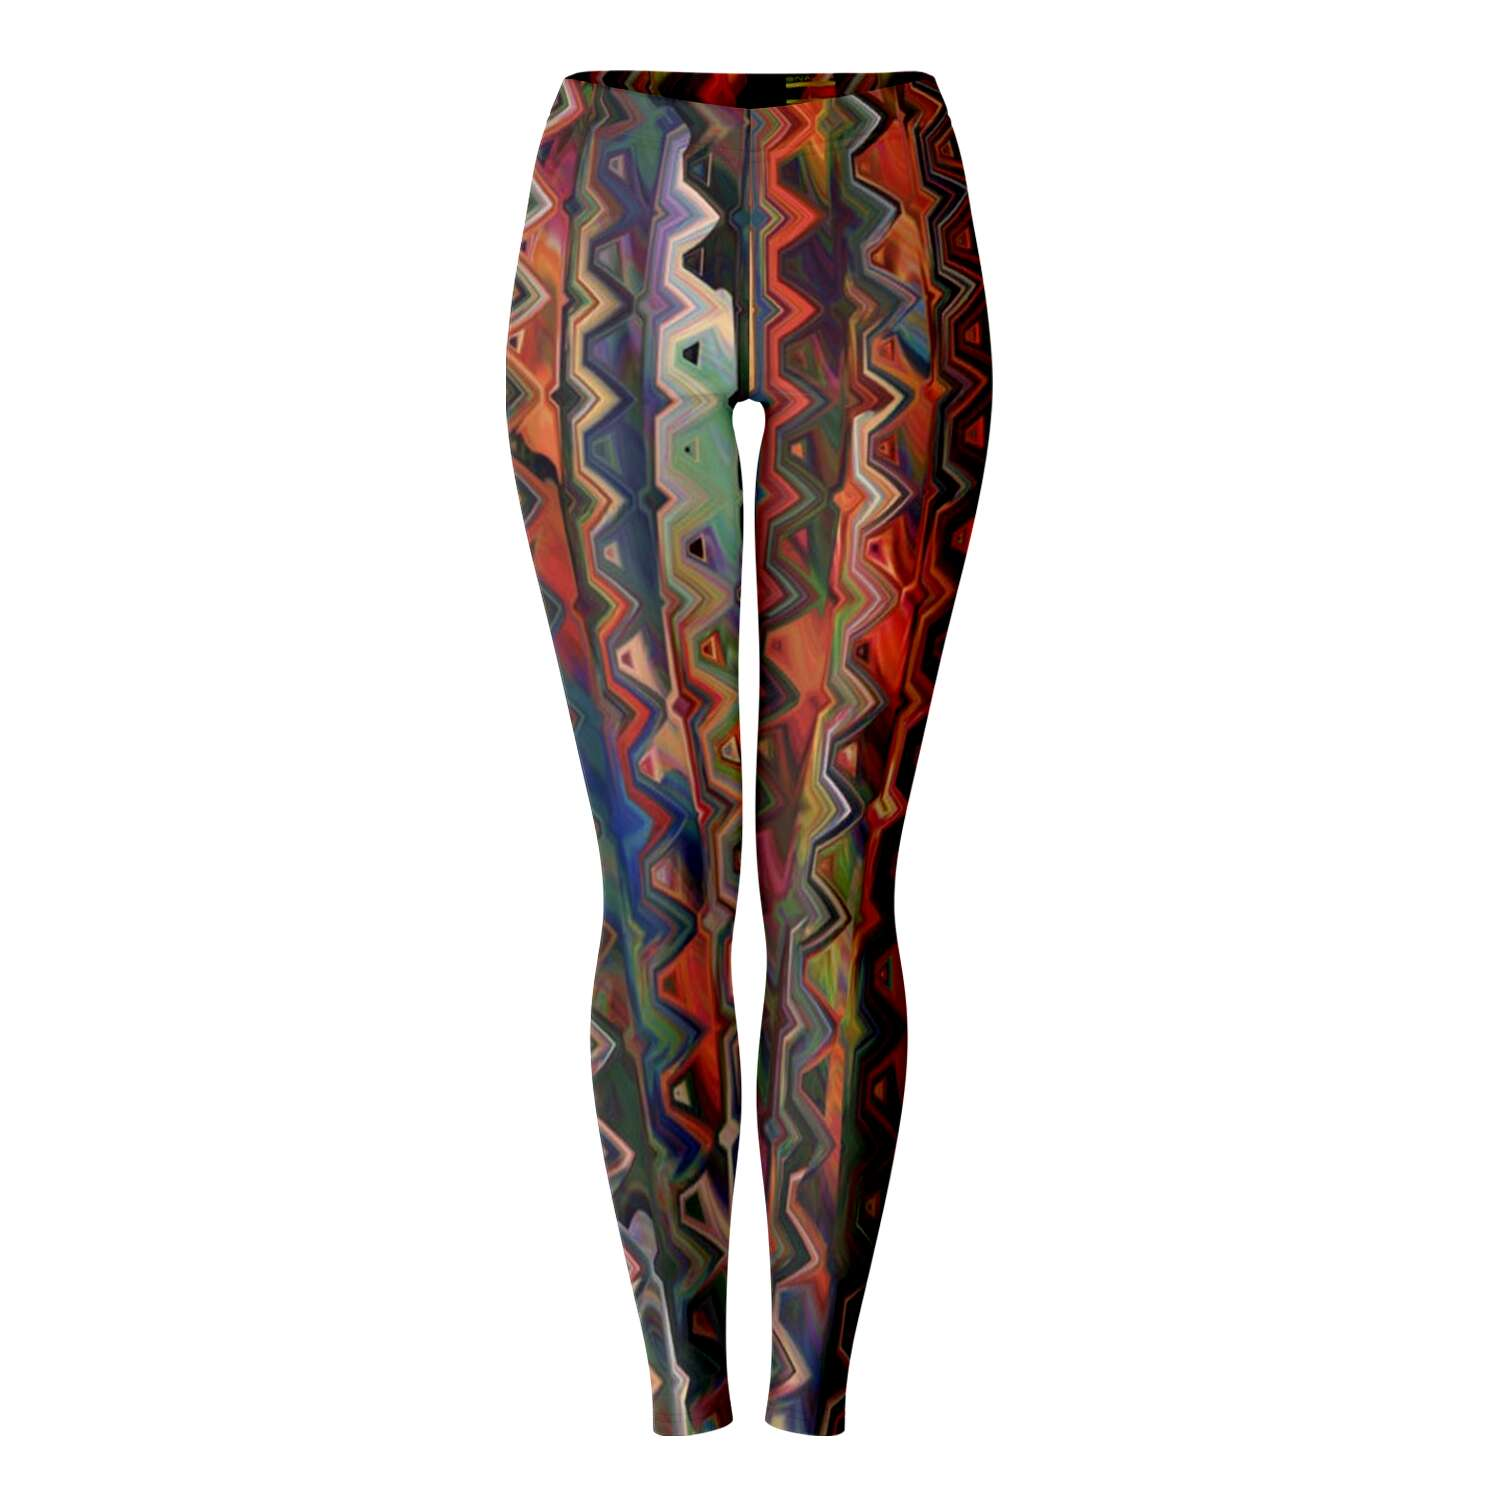 LANTANA 701 LEGGINGS (LADIES)